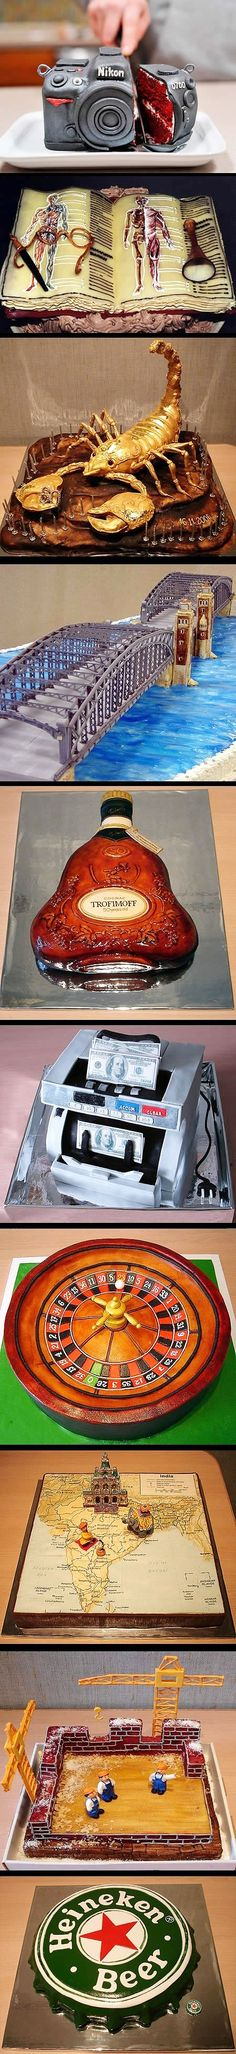 Ooee, just once I want a cake like this for my own birthday, haha.